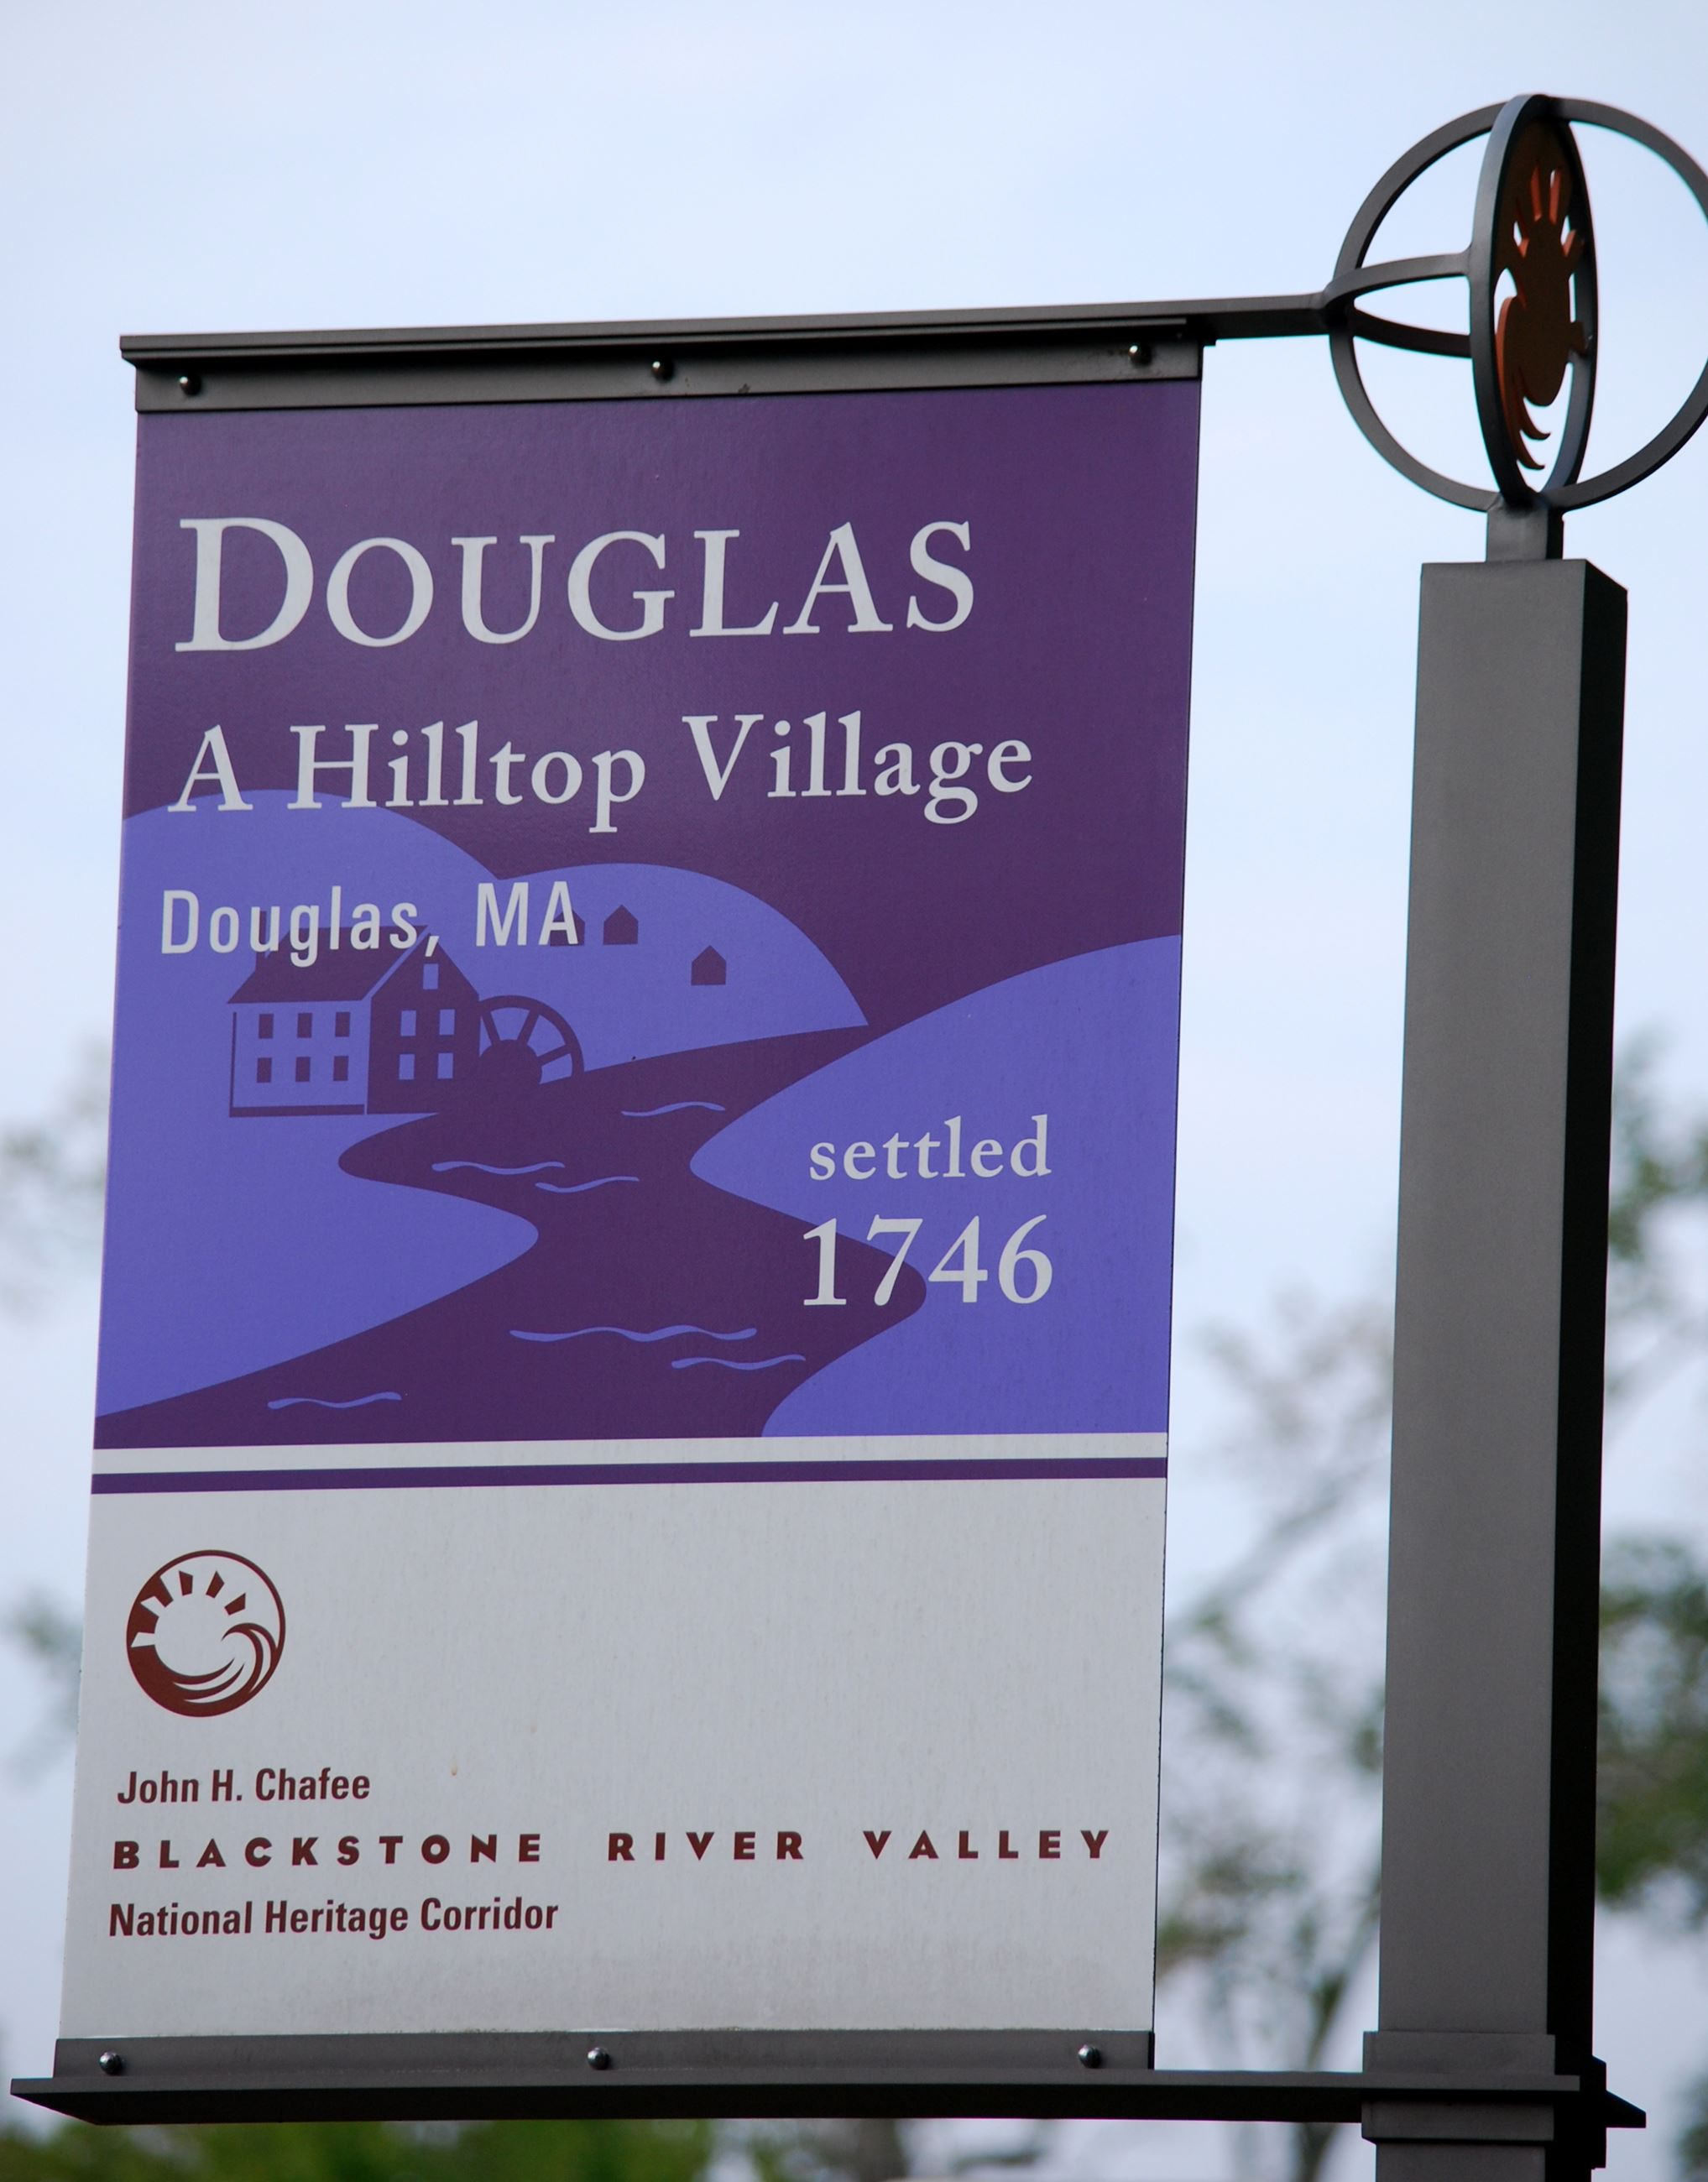 Street Flag on post, with text Douglas Hilltop Village  settled 1746